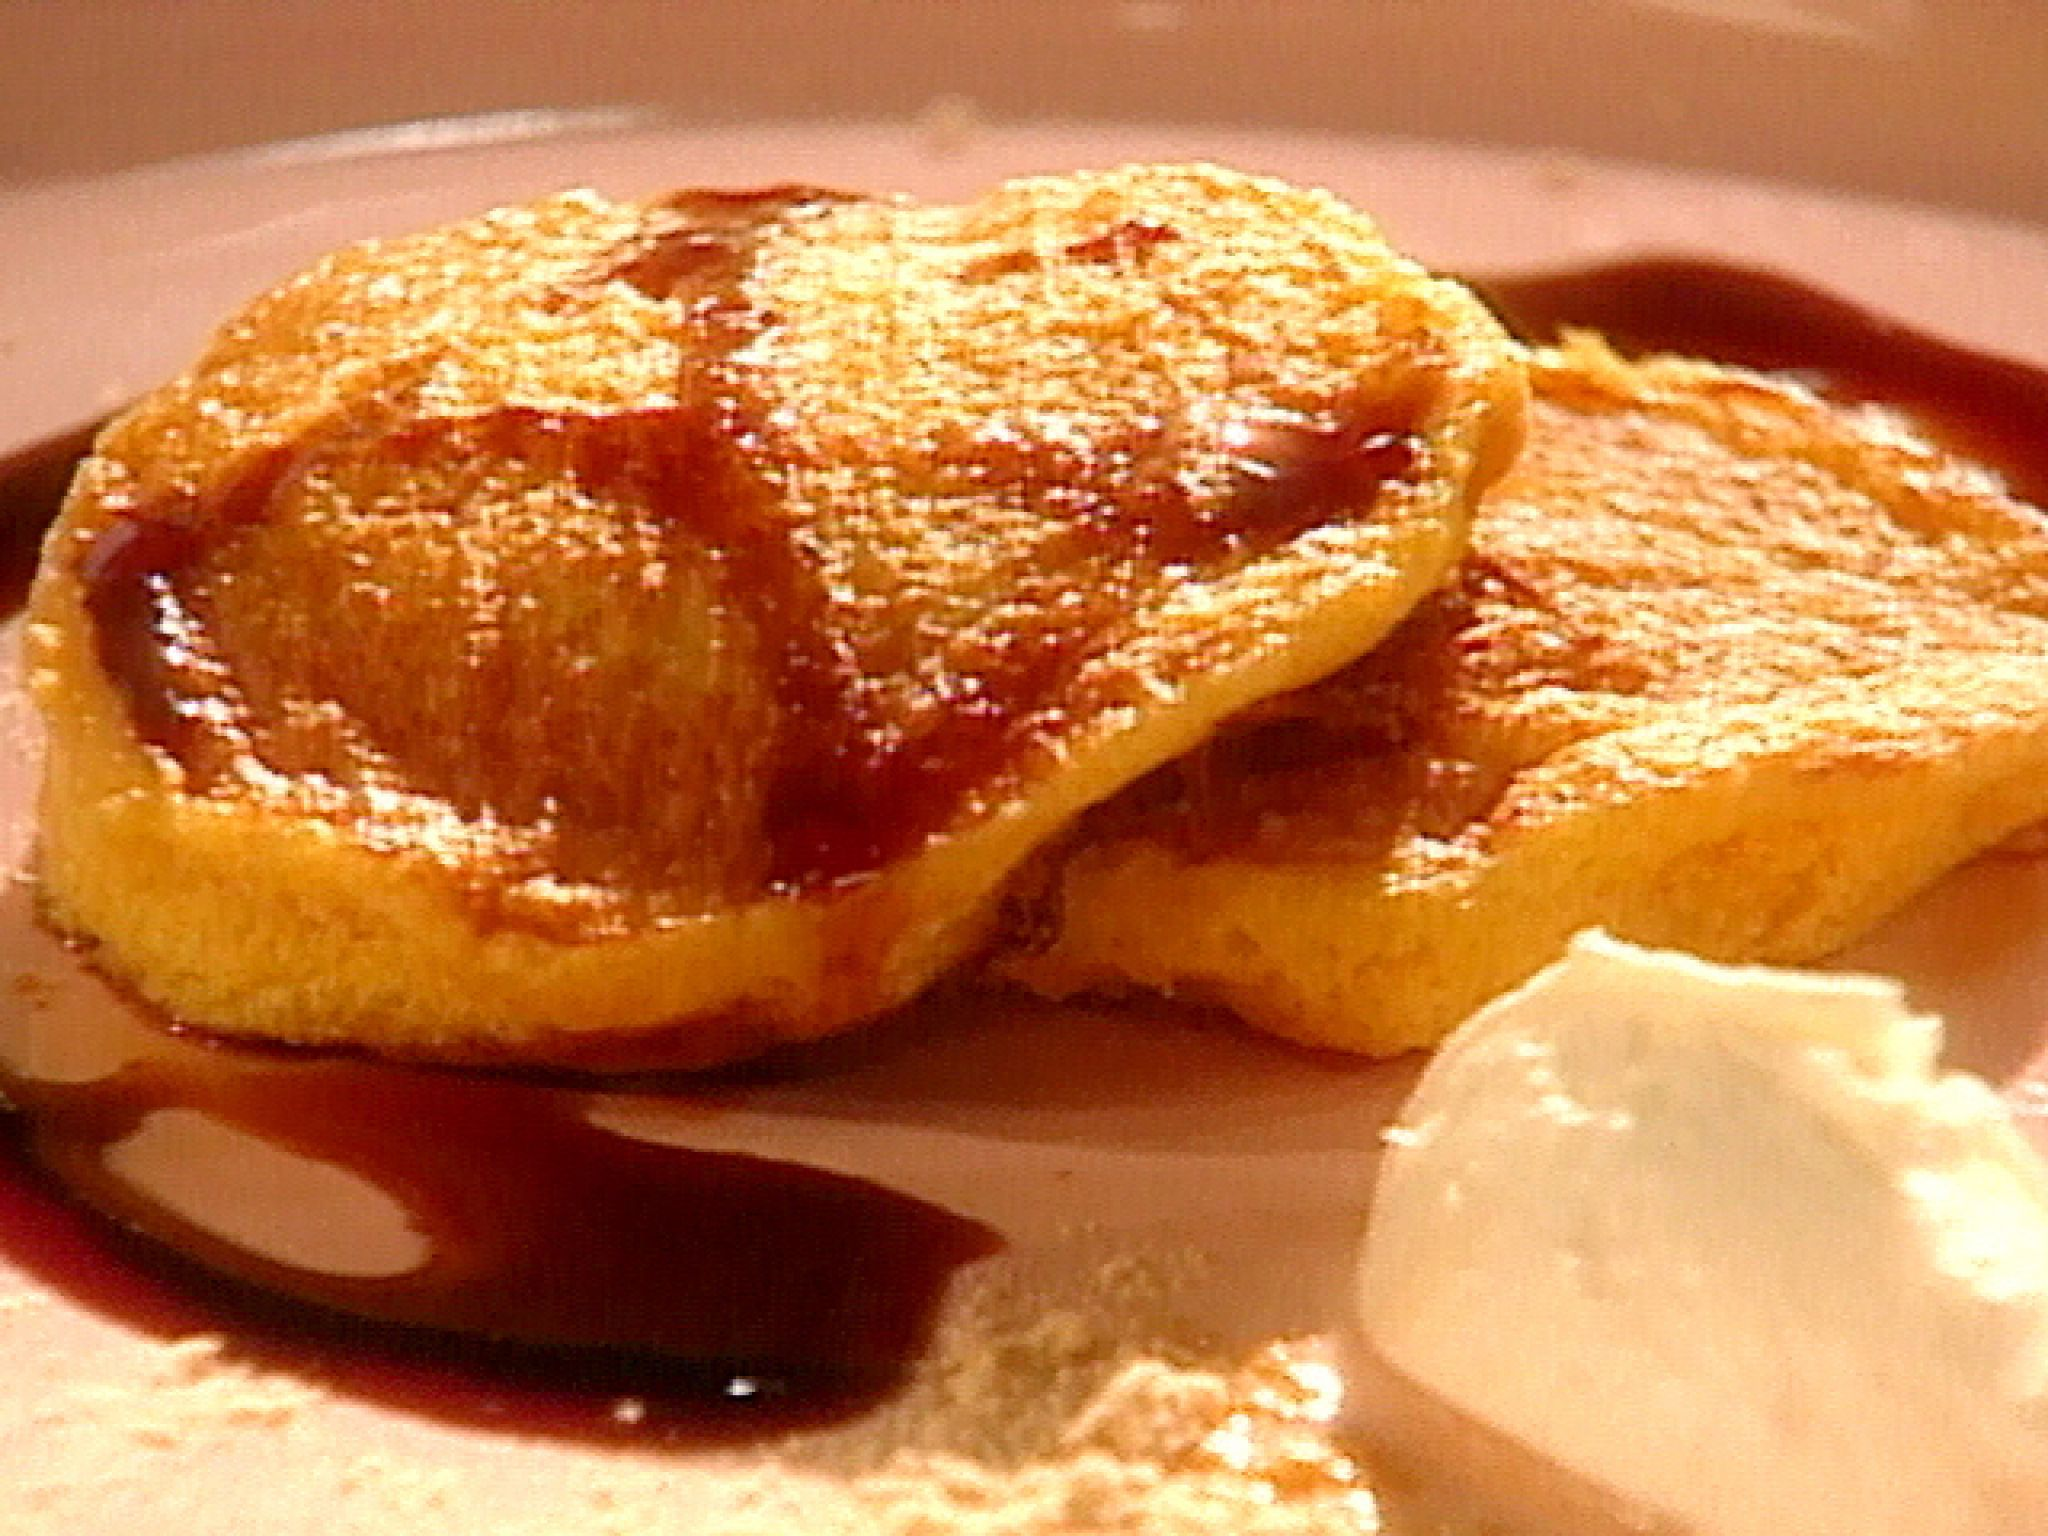 Squash pancakes with fig syrup recipe figs pancakes and syrup food squash pancakes with fig syrup recipe from sweet dreams via food network forumfinder Images